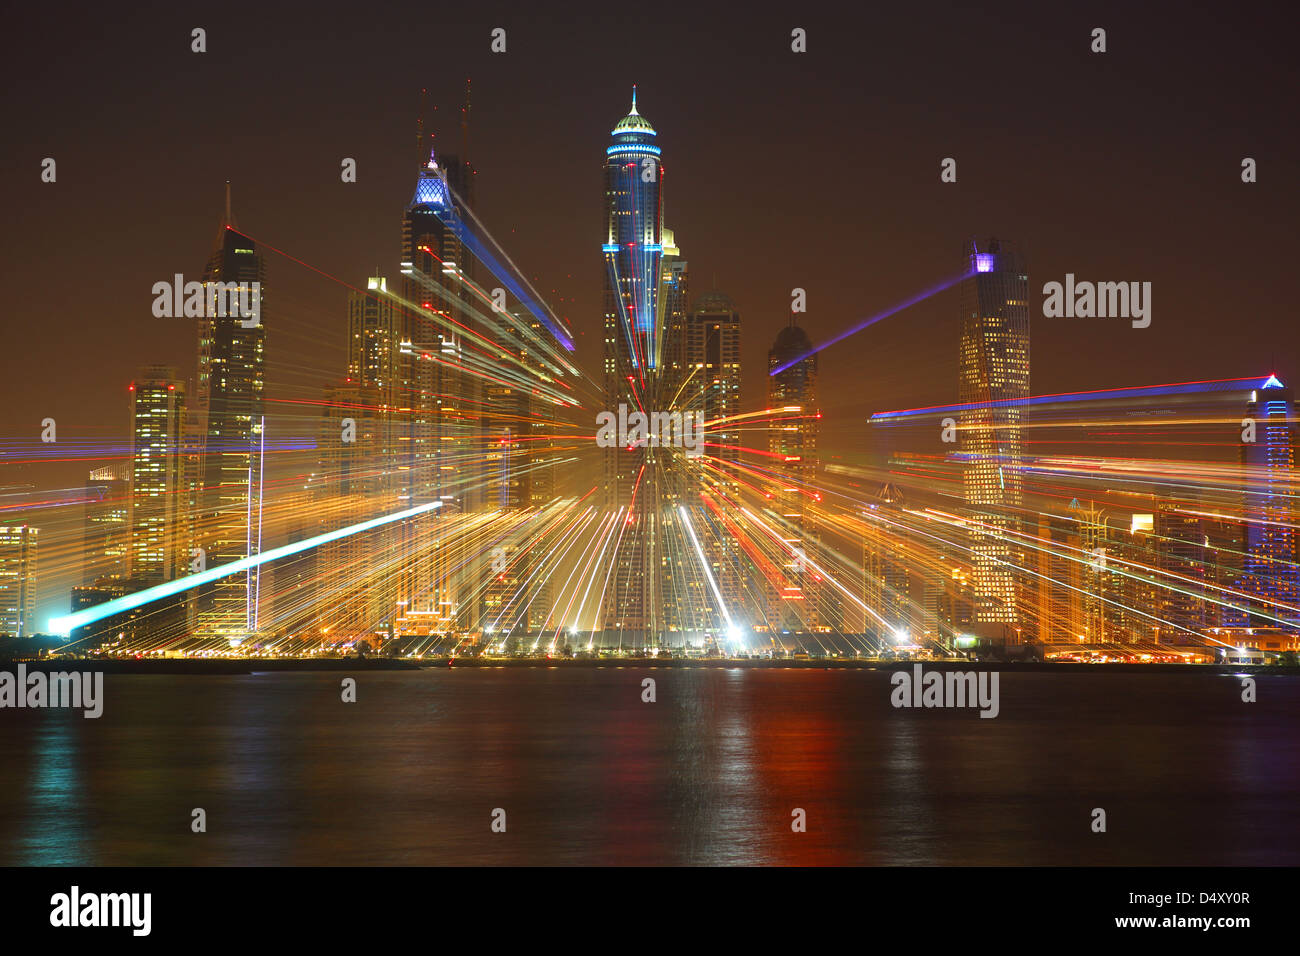 Dubai Marina skyline at night with lens zoom, United Arab Emirates - Stock Image